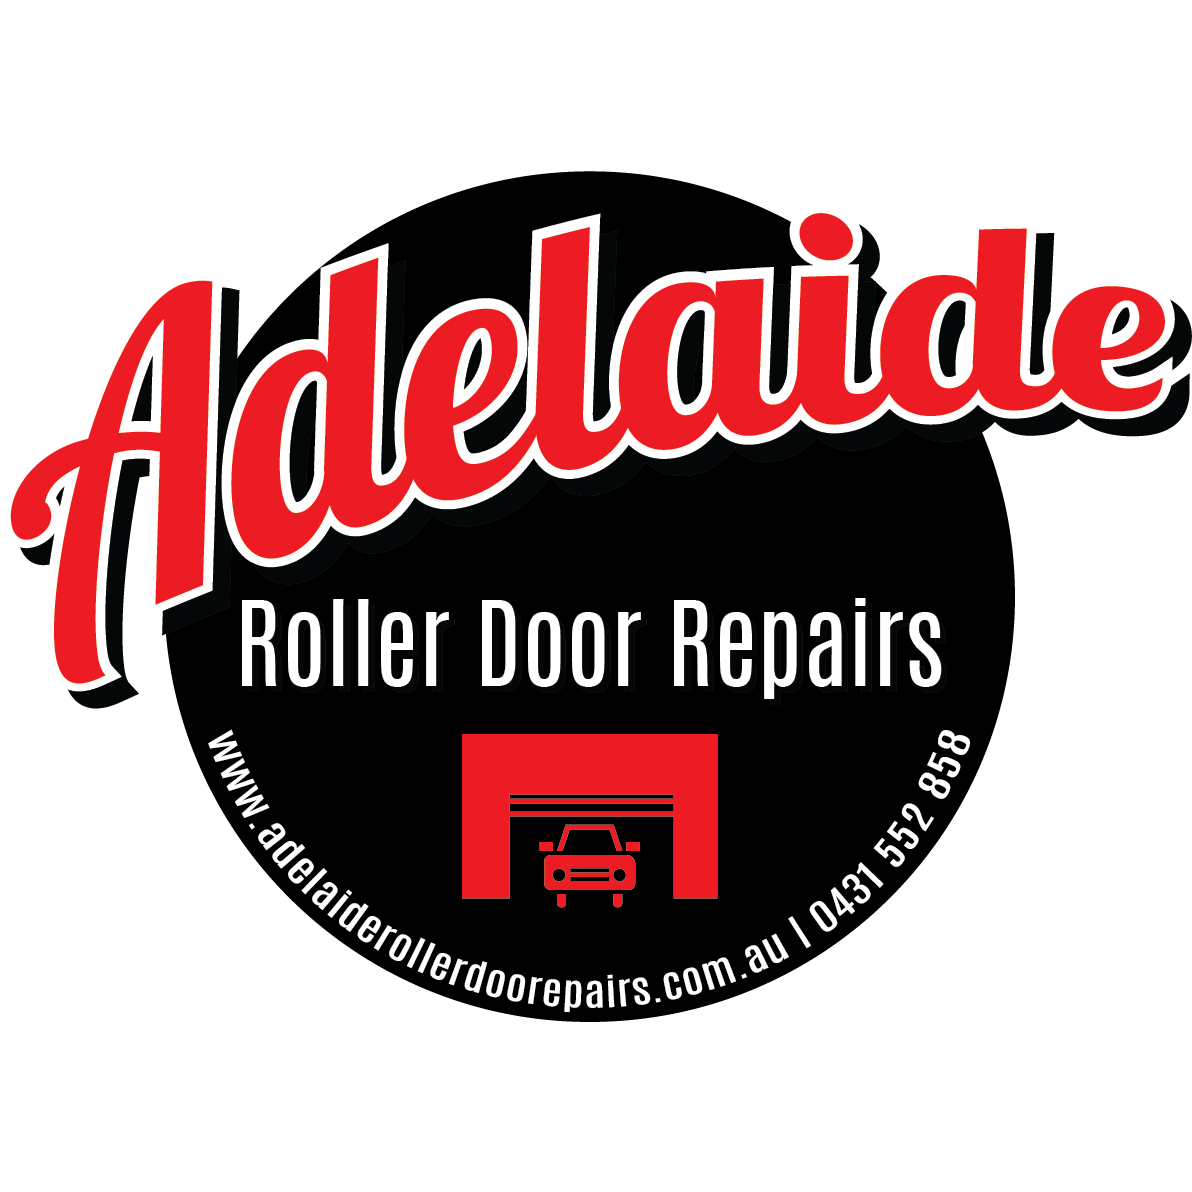 Adelaide Roller Door Repairs - Garage & carport roller door repair specialists